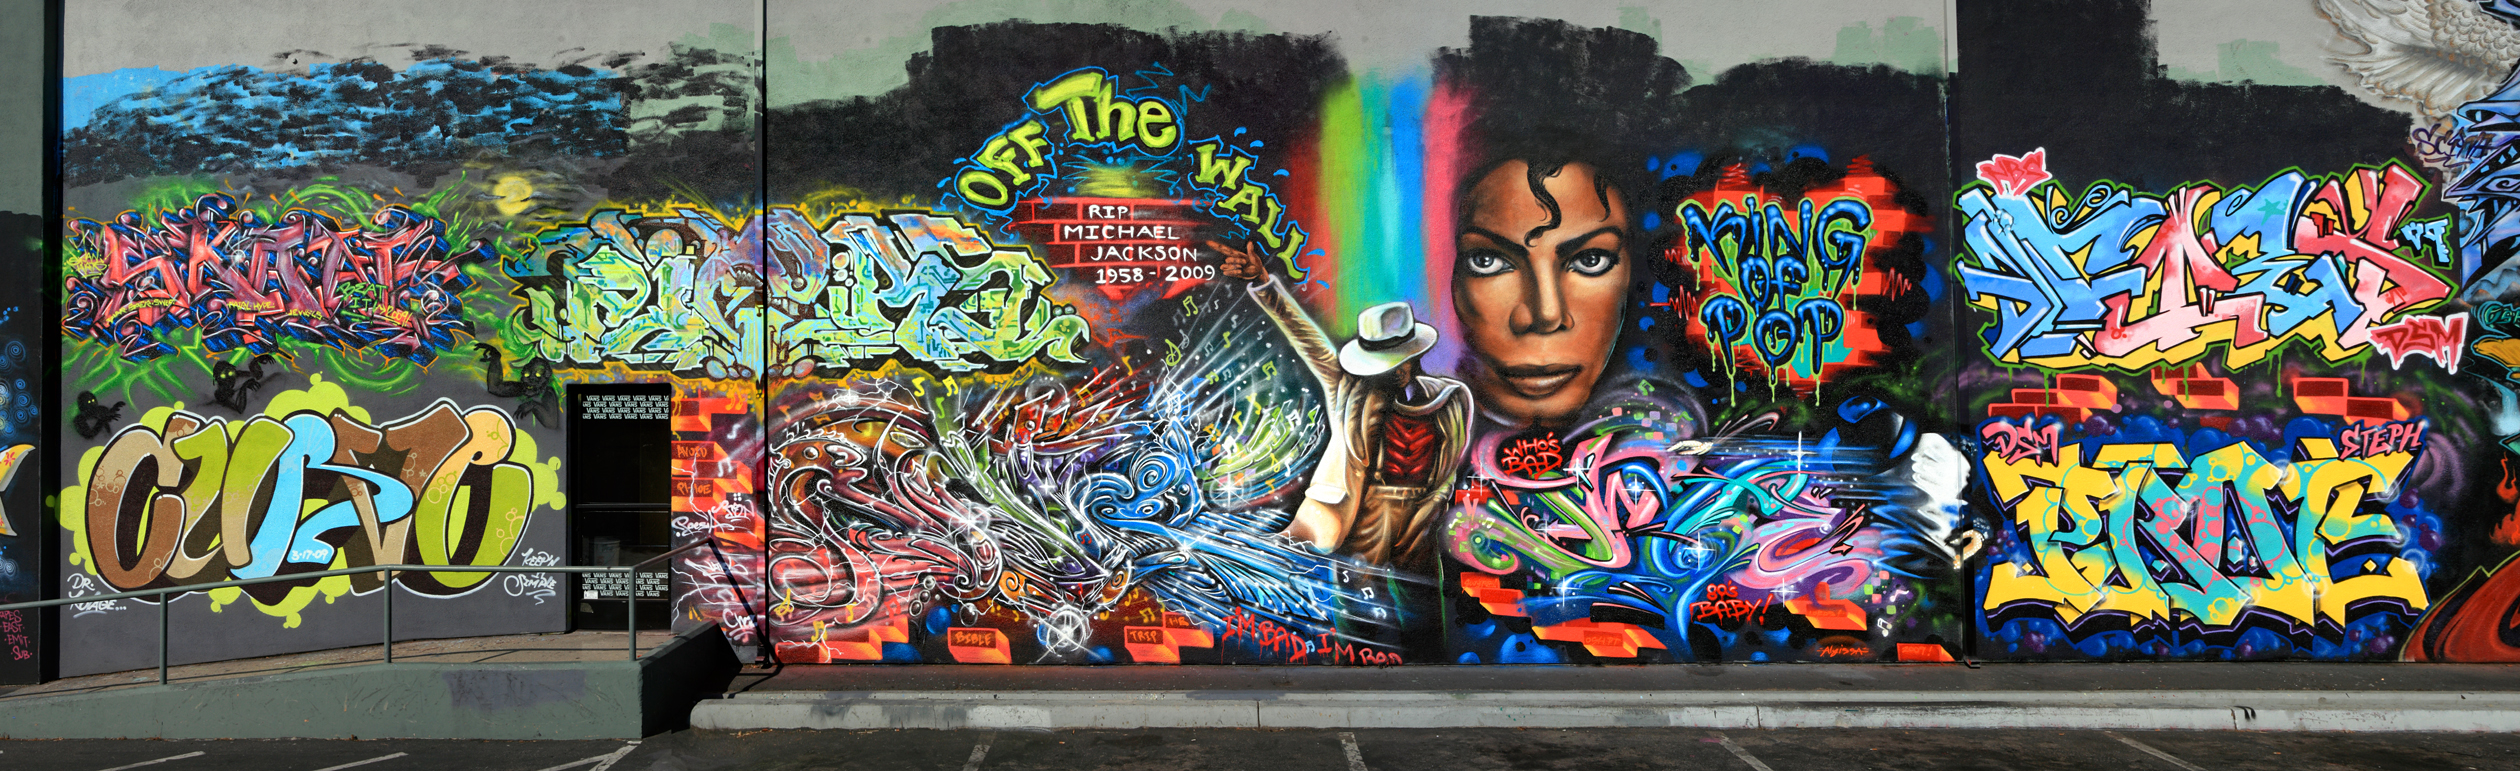 King Jackson File Rest In Peace Michael Jackson King Of Pop Jpg Wikimedia